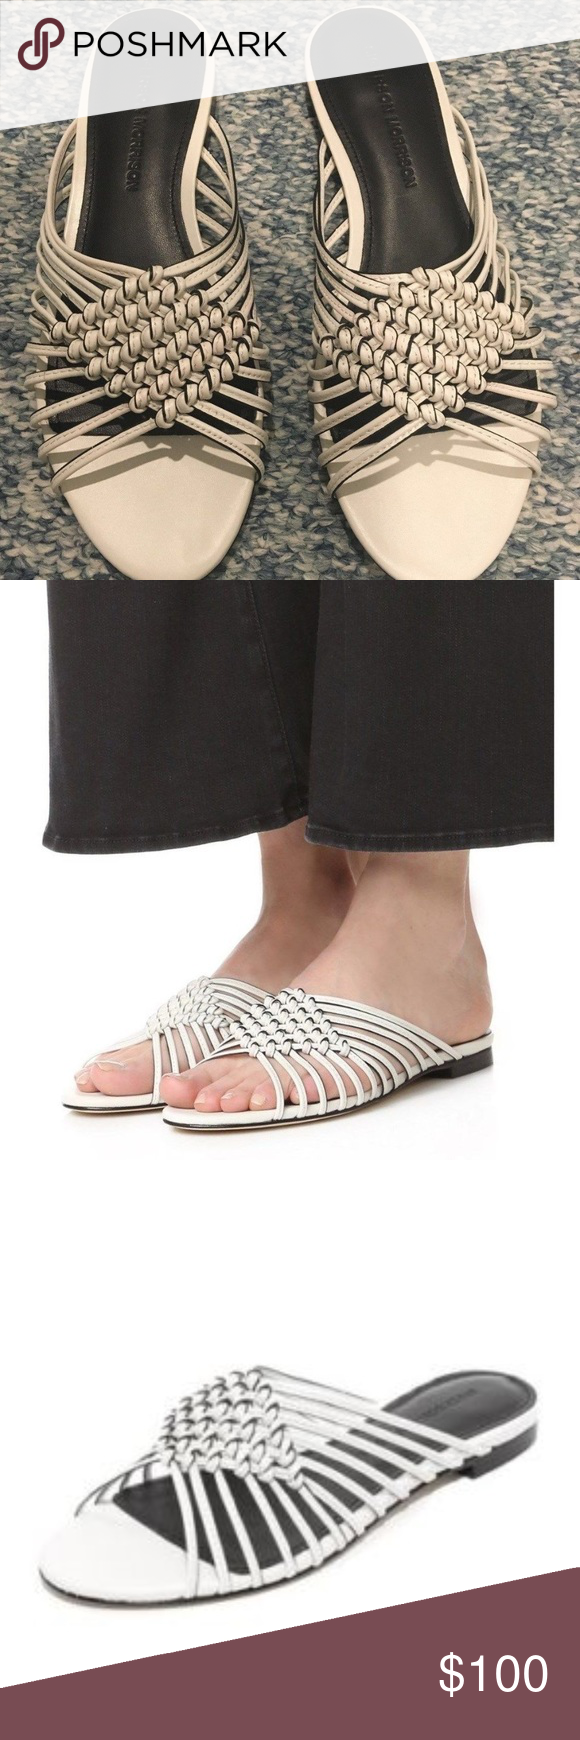 Sigerson Morrison Aggie Slide Sandals Size 7 NIB! These BRAND NEW Sigerson Morrison slides are so ch...